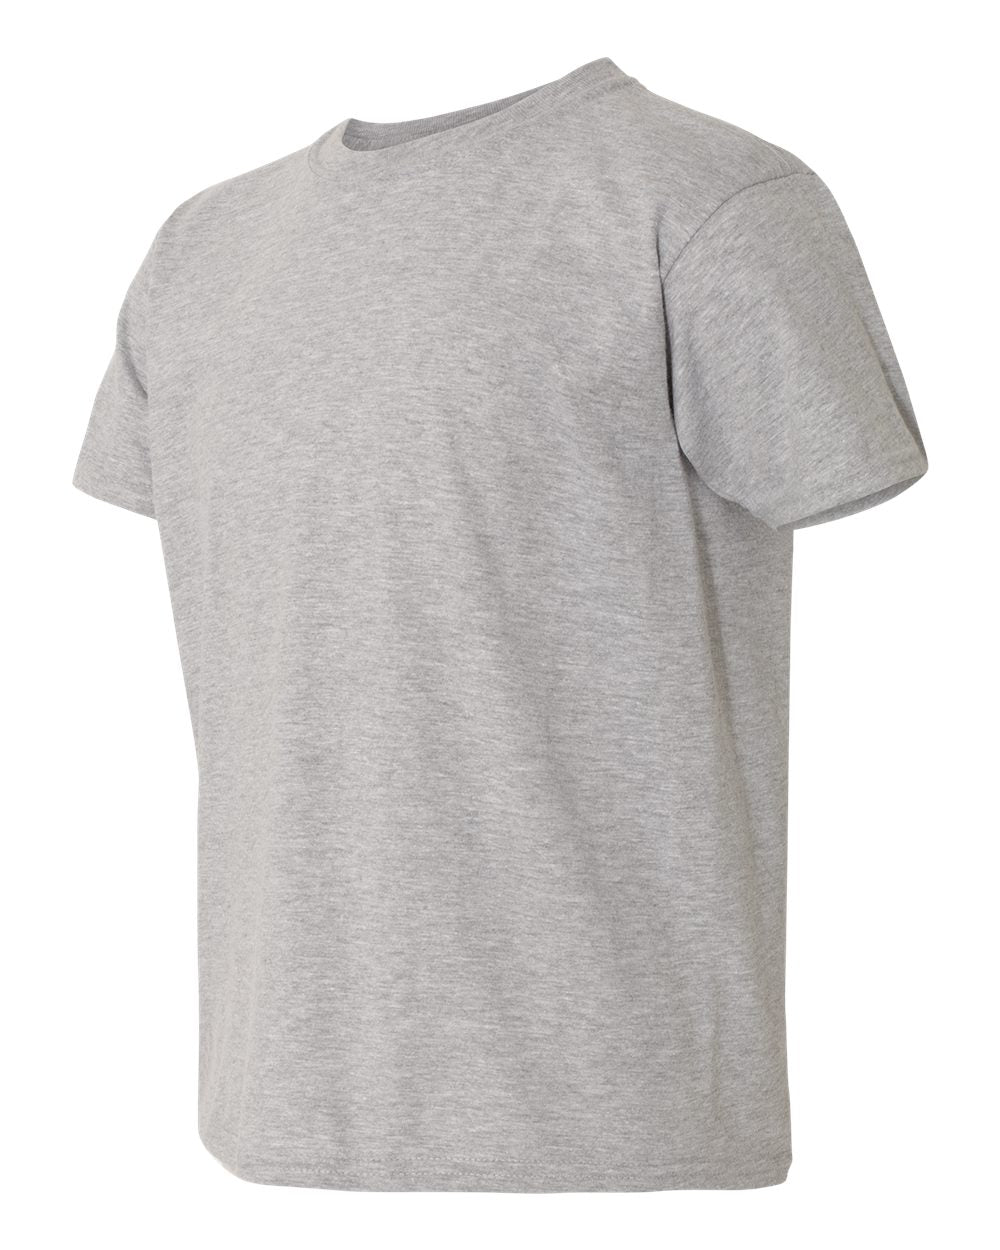 GILDAN Youth 64500B T-shirt Sport Gray